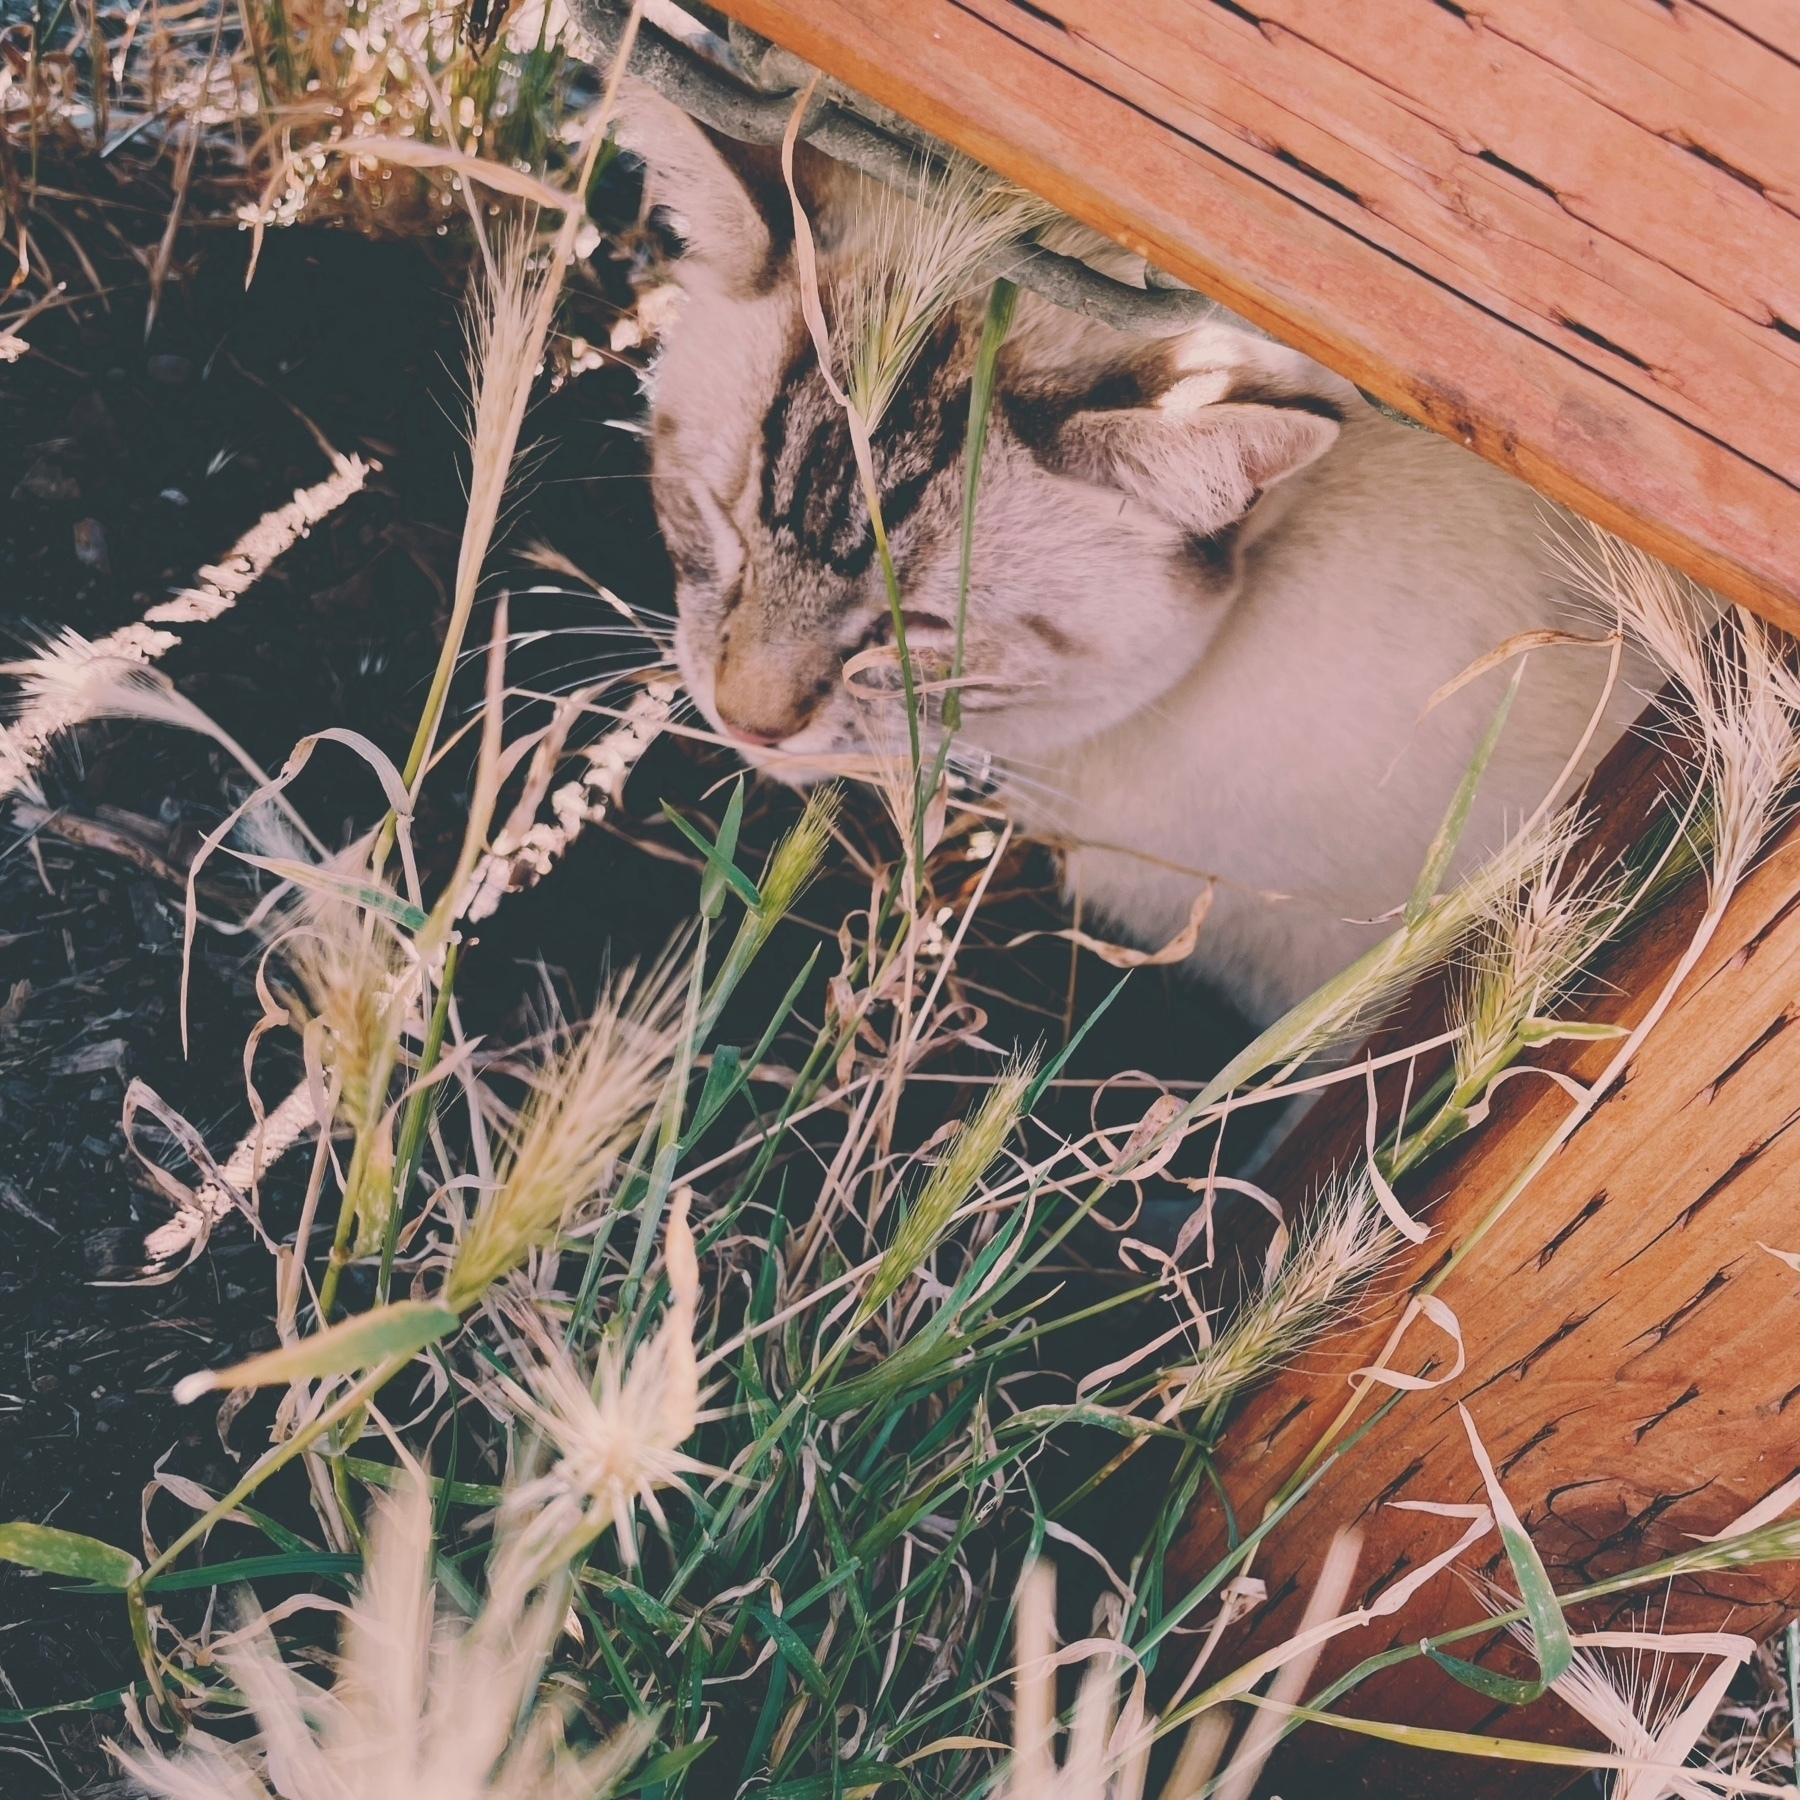 cat under a wooden bench among wild grasses